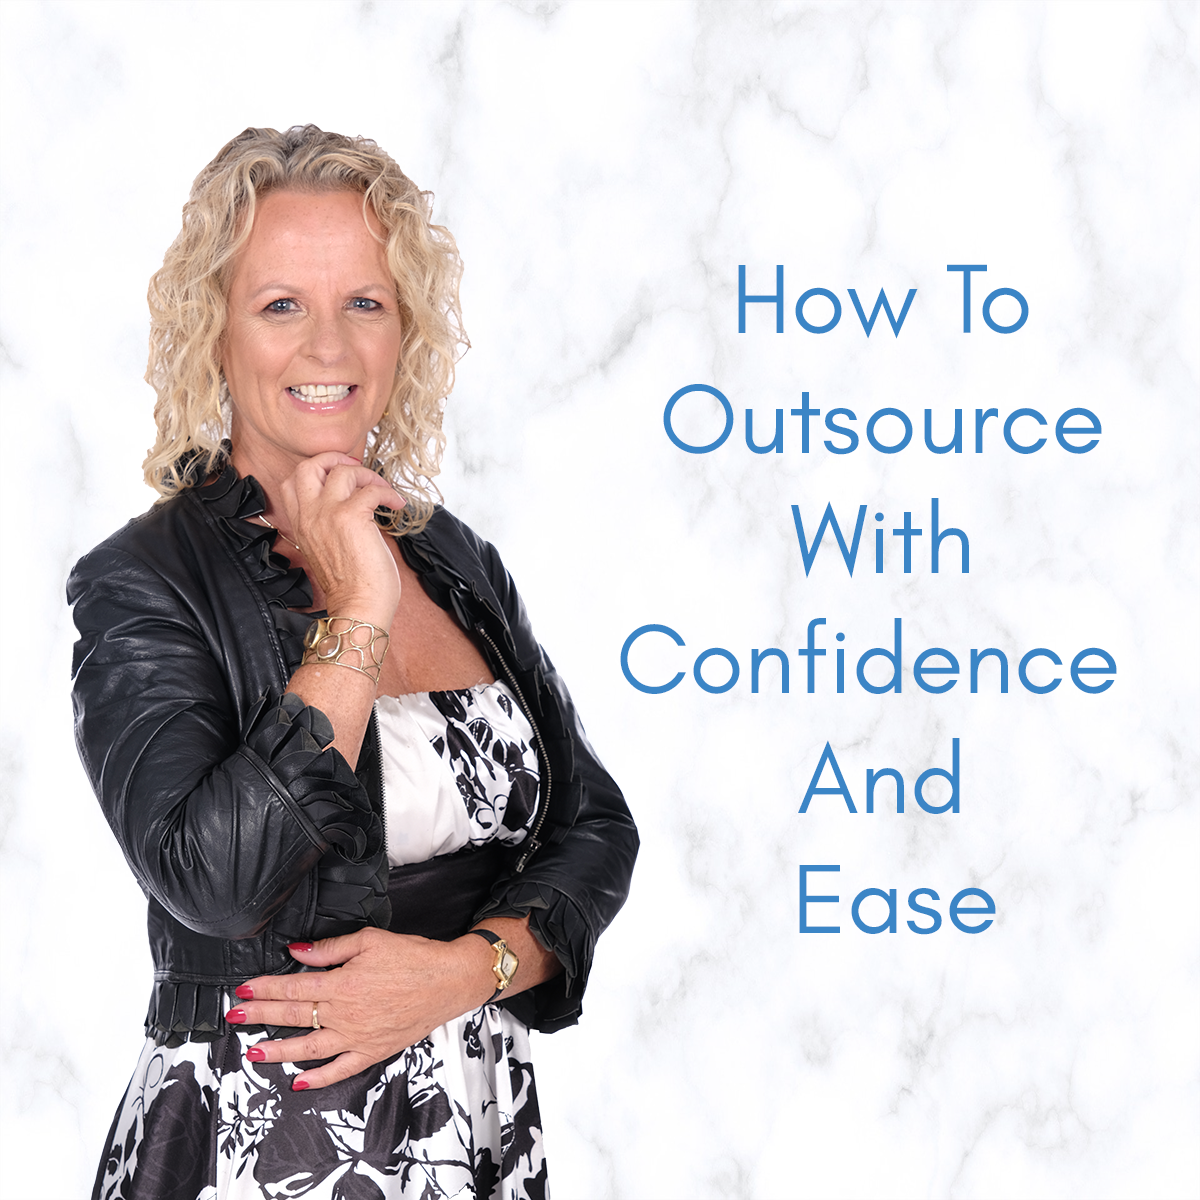 How To Outsource With Confidence And Ease